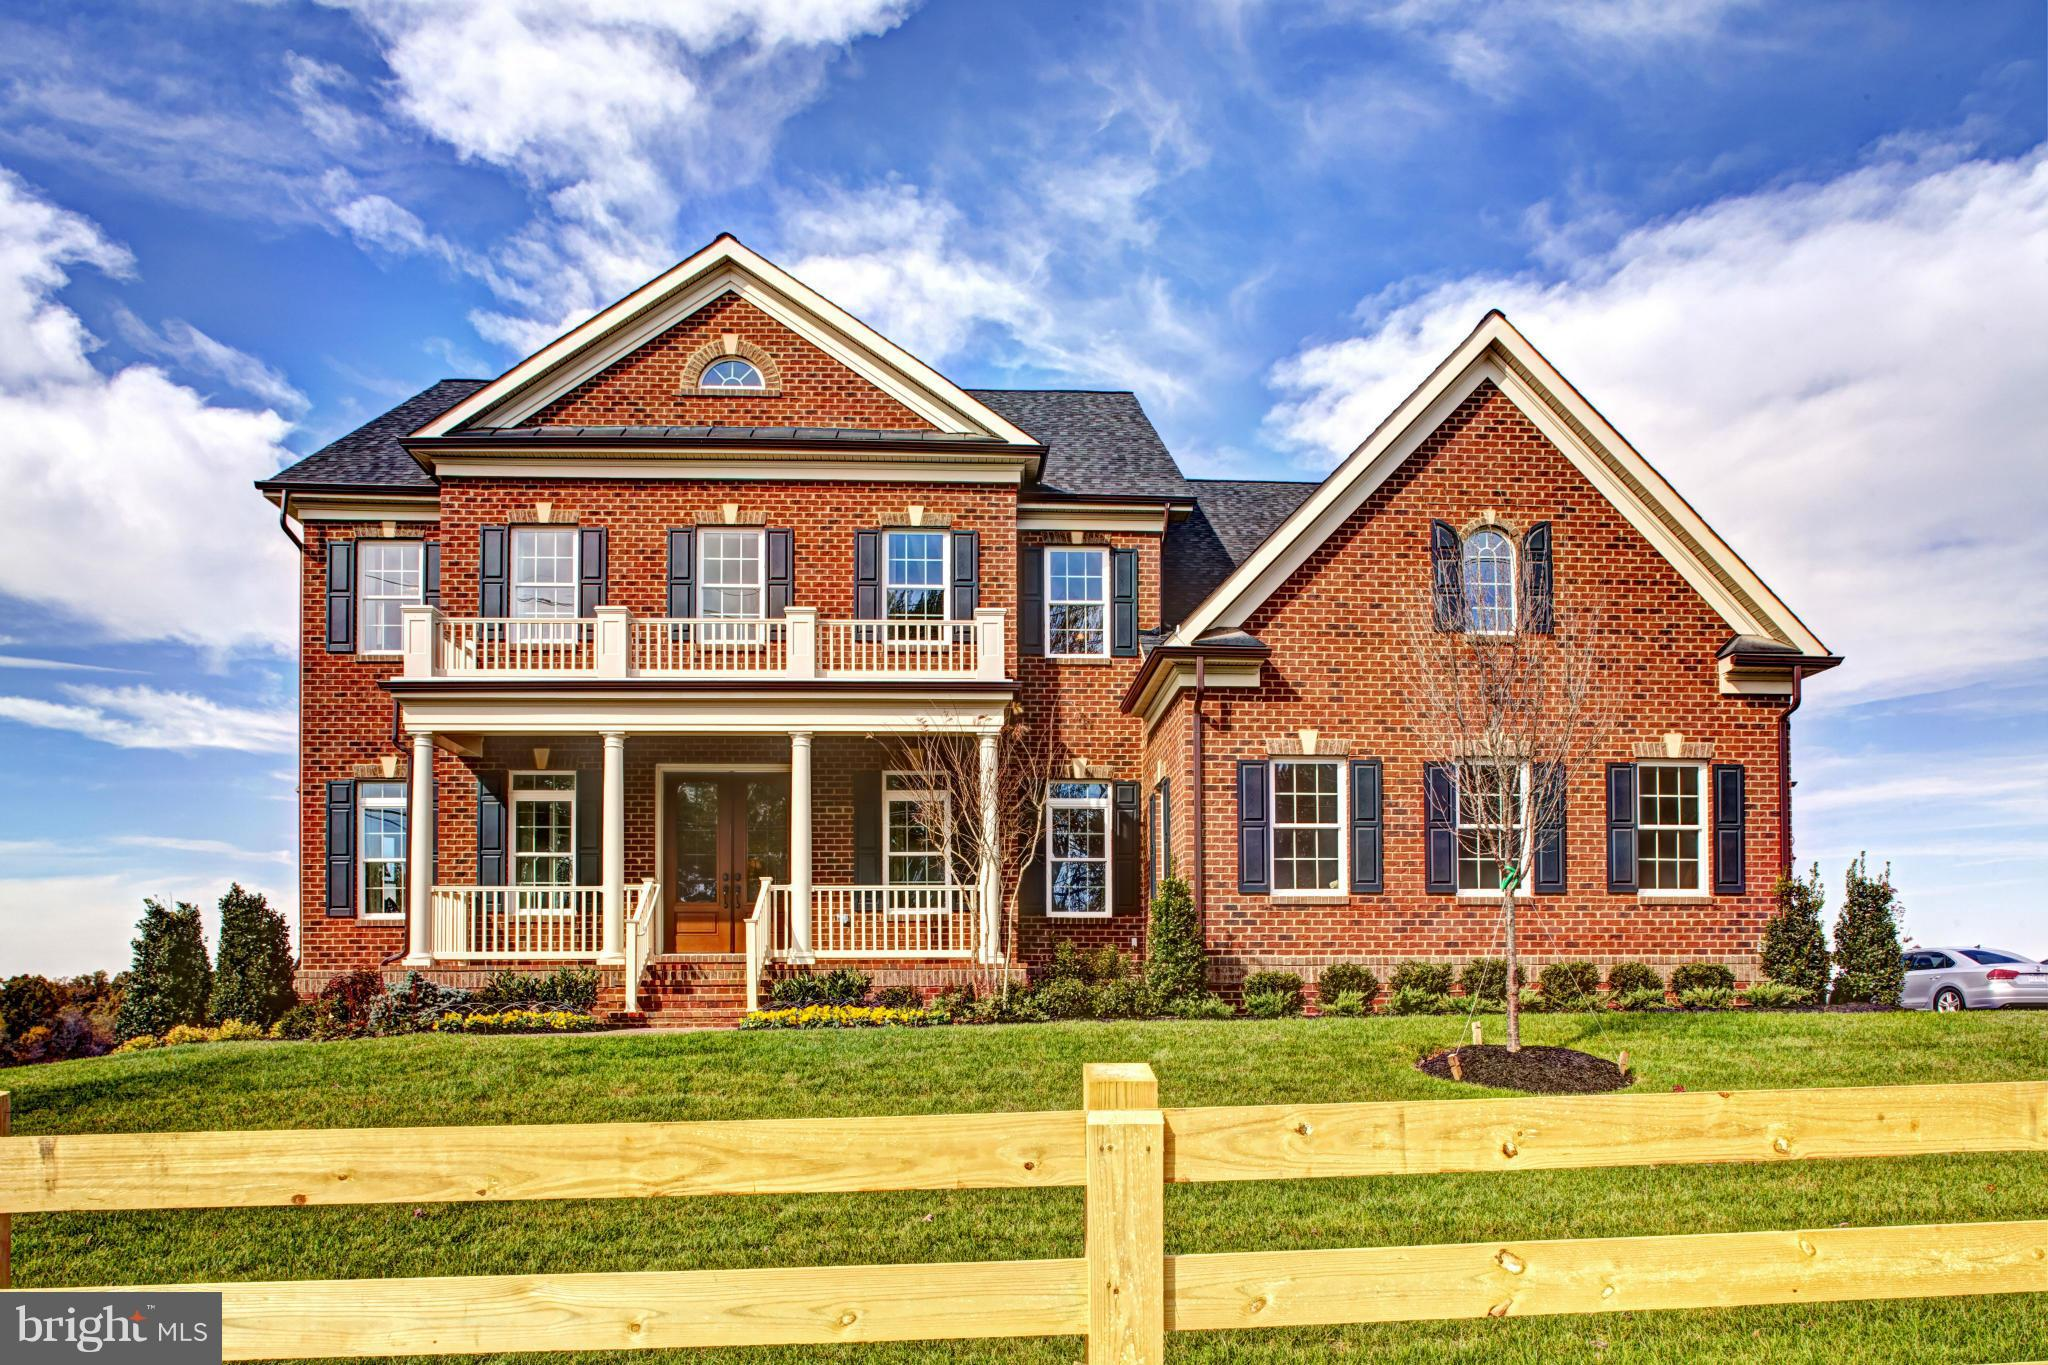 5058 GAITHERS CHANCE DRIVE, CLARKSVILLE, MD 21029